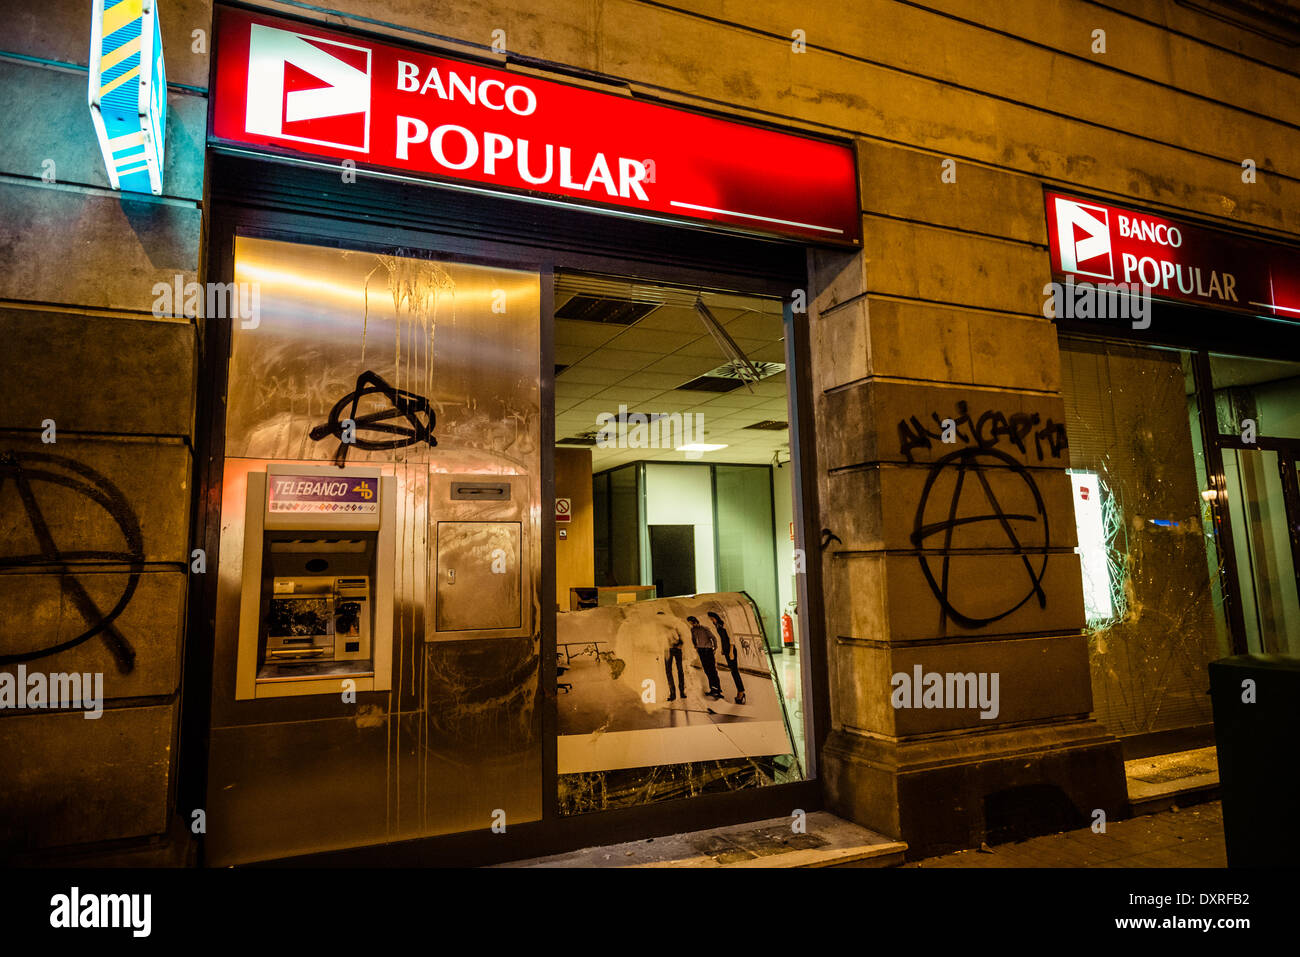 Barcelona, Spain. March 29th, 2014: A 'Banco Popular' bank office gets destroyed during a march through Barcelona to sympathize with twenty activists facing a national court law suit Credit:  matthi/Alamy Live News - Stock Image